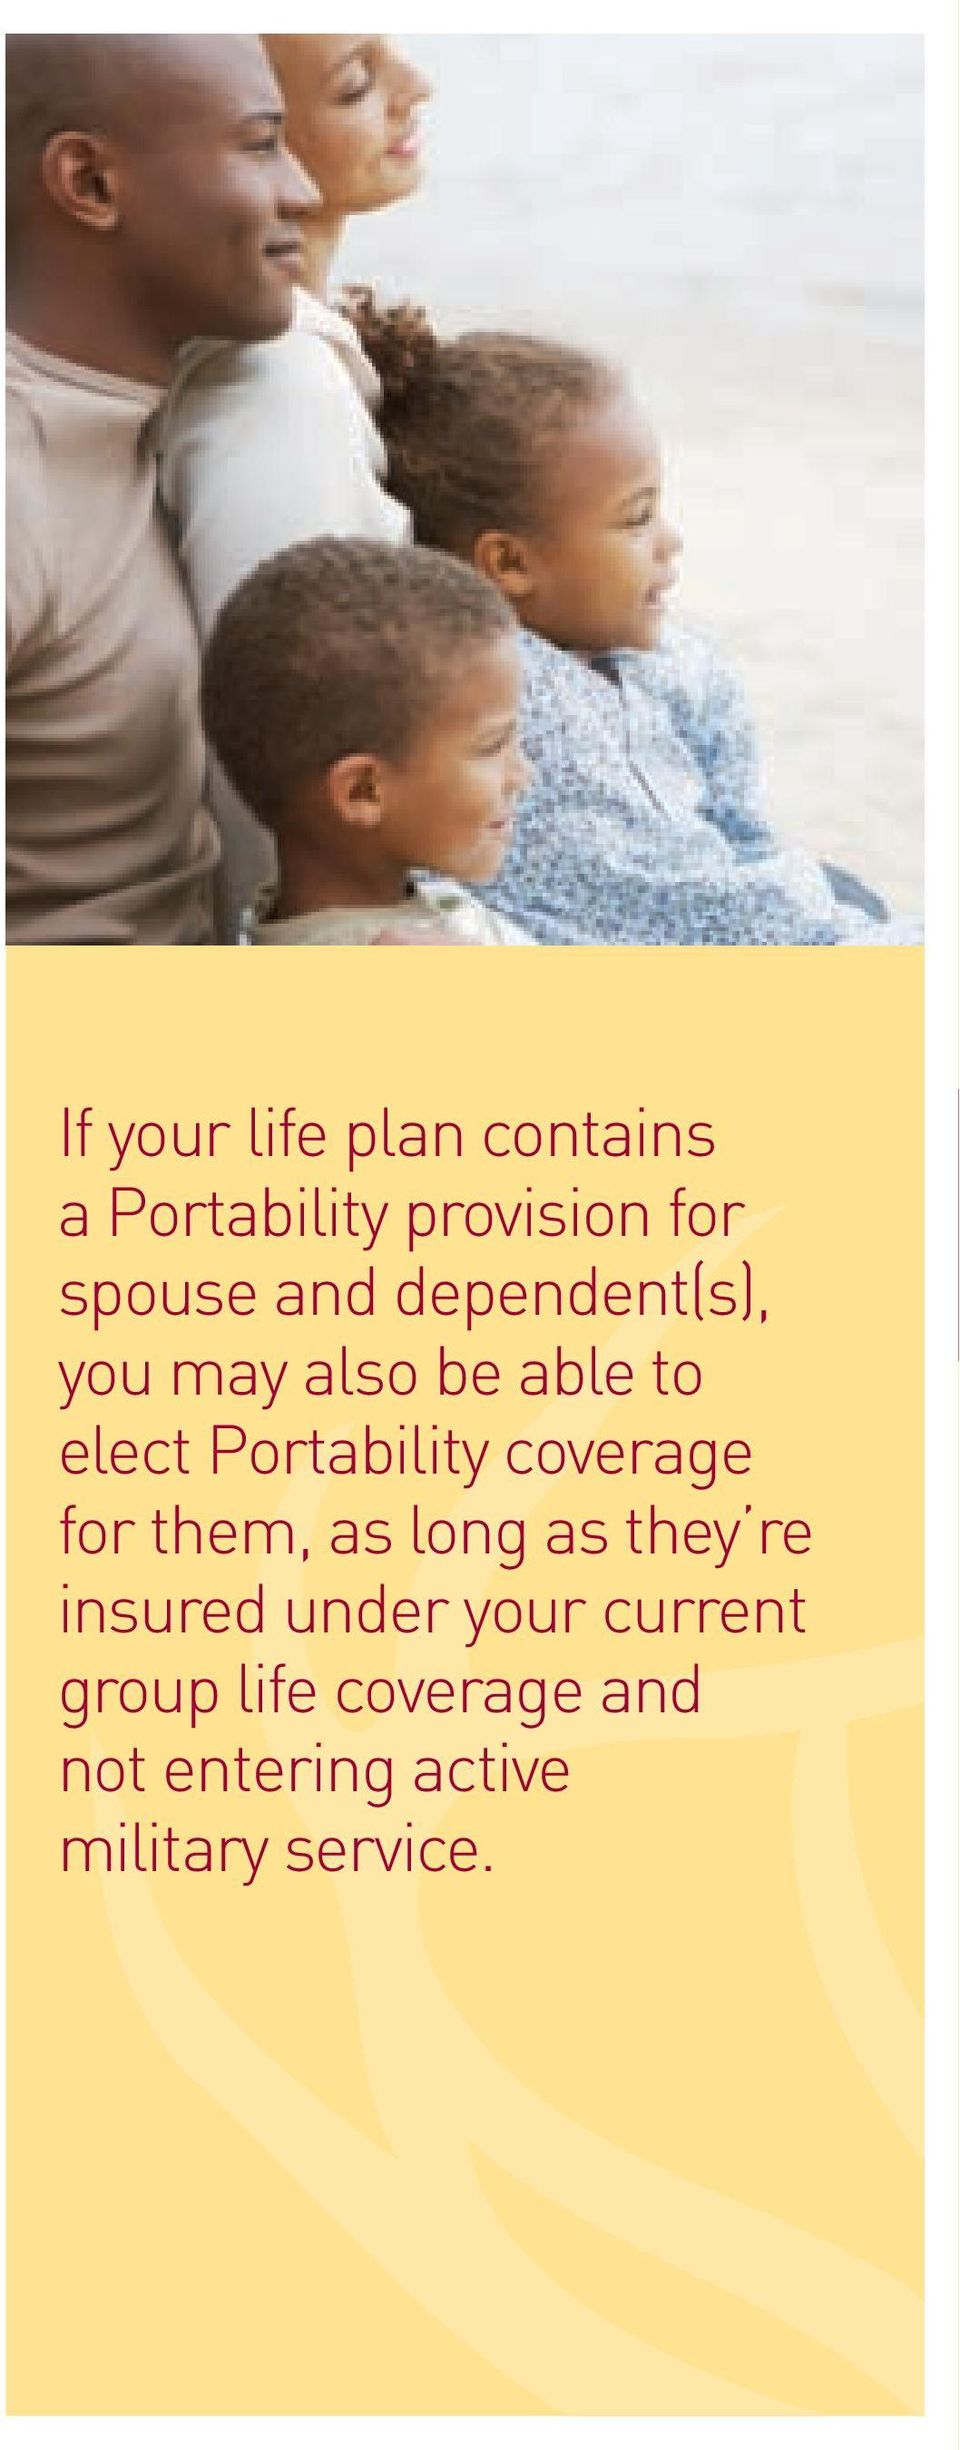 coverage for them, as long as they re insured under your